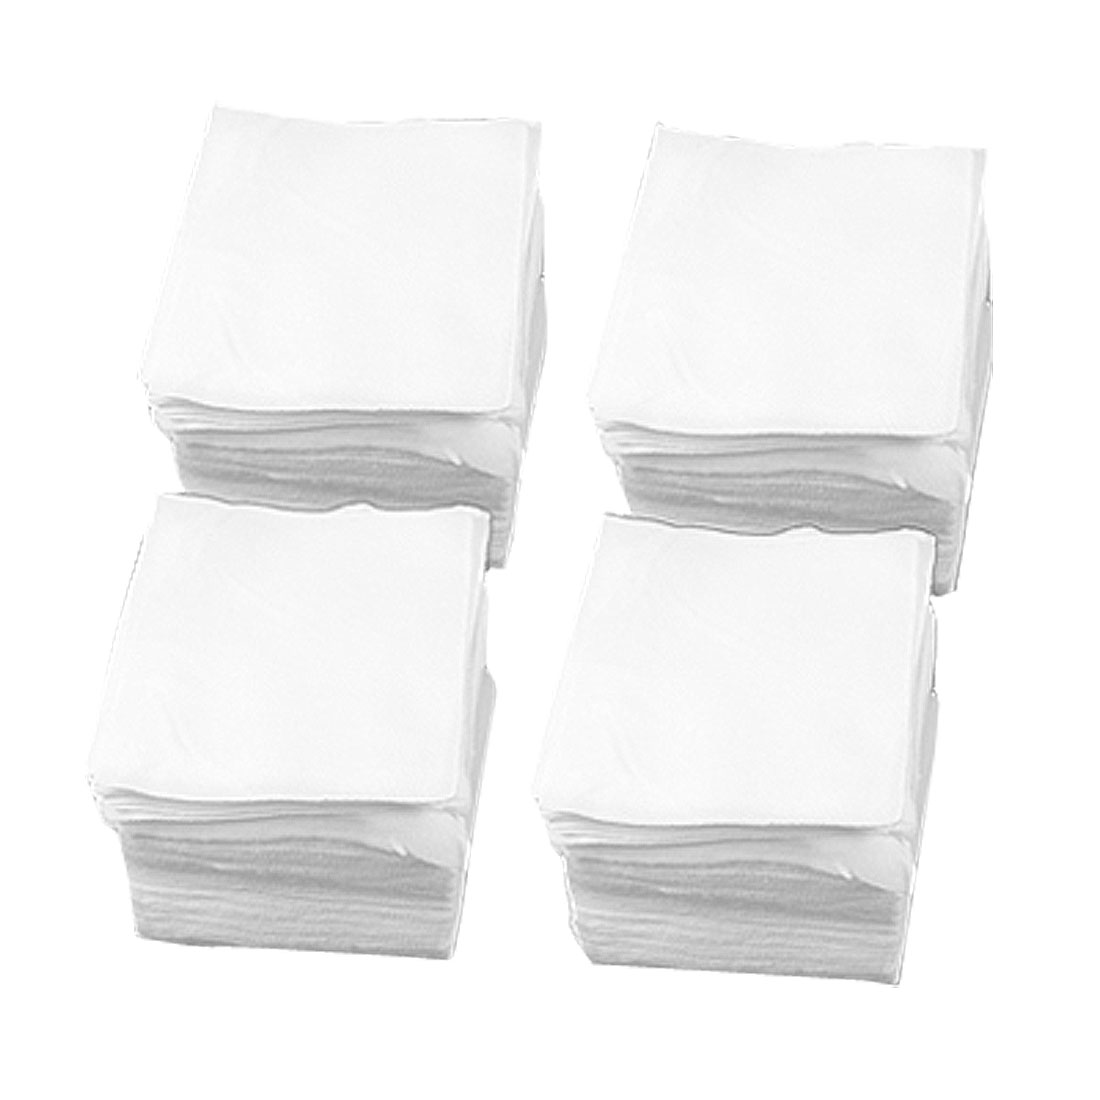 """600 Pcs PCB LCD White Dustless Cloth Polyester Cleanroom Wipers 4"""" x 4"""""""